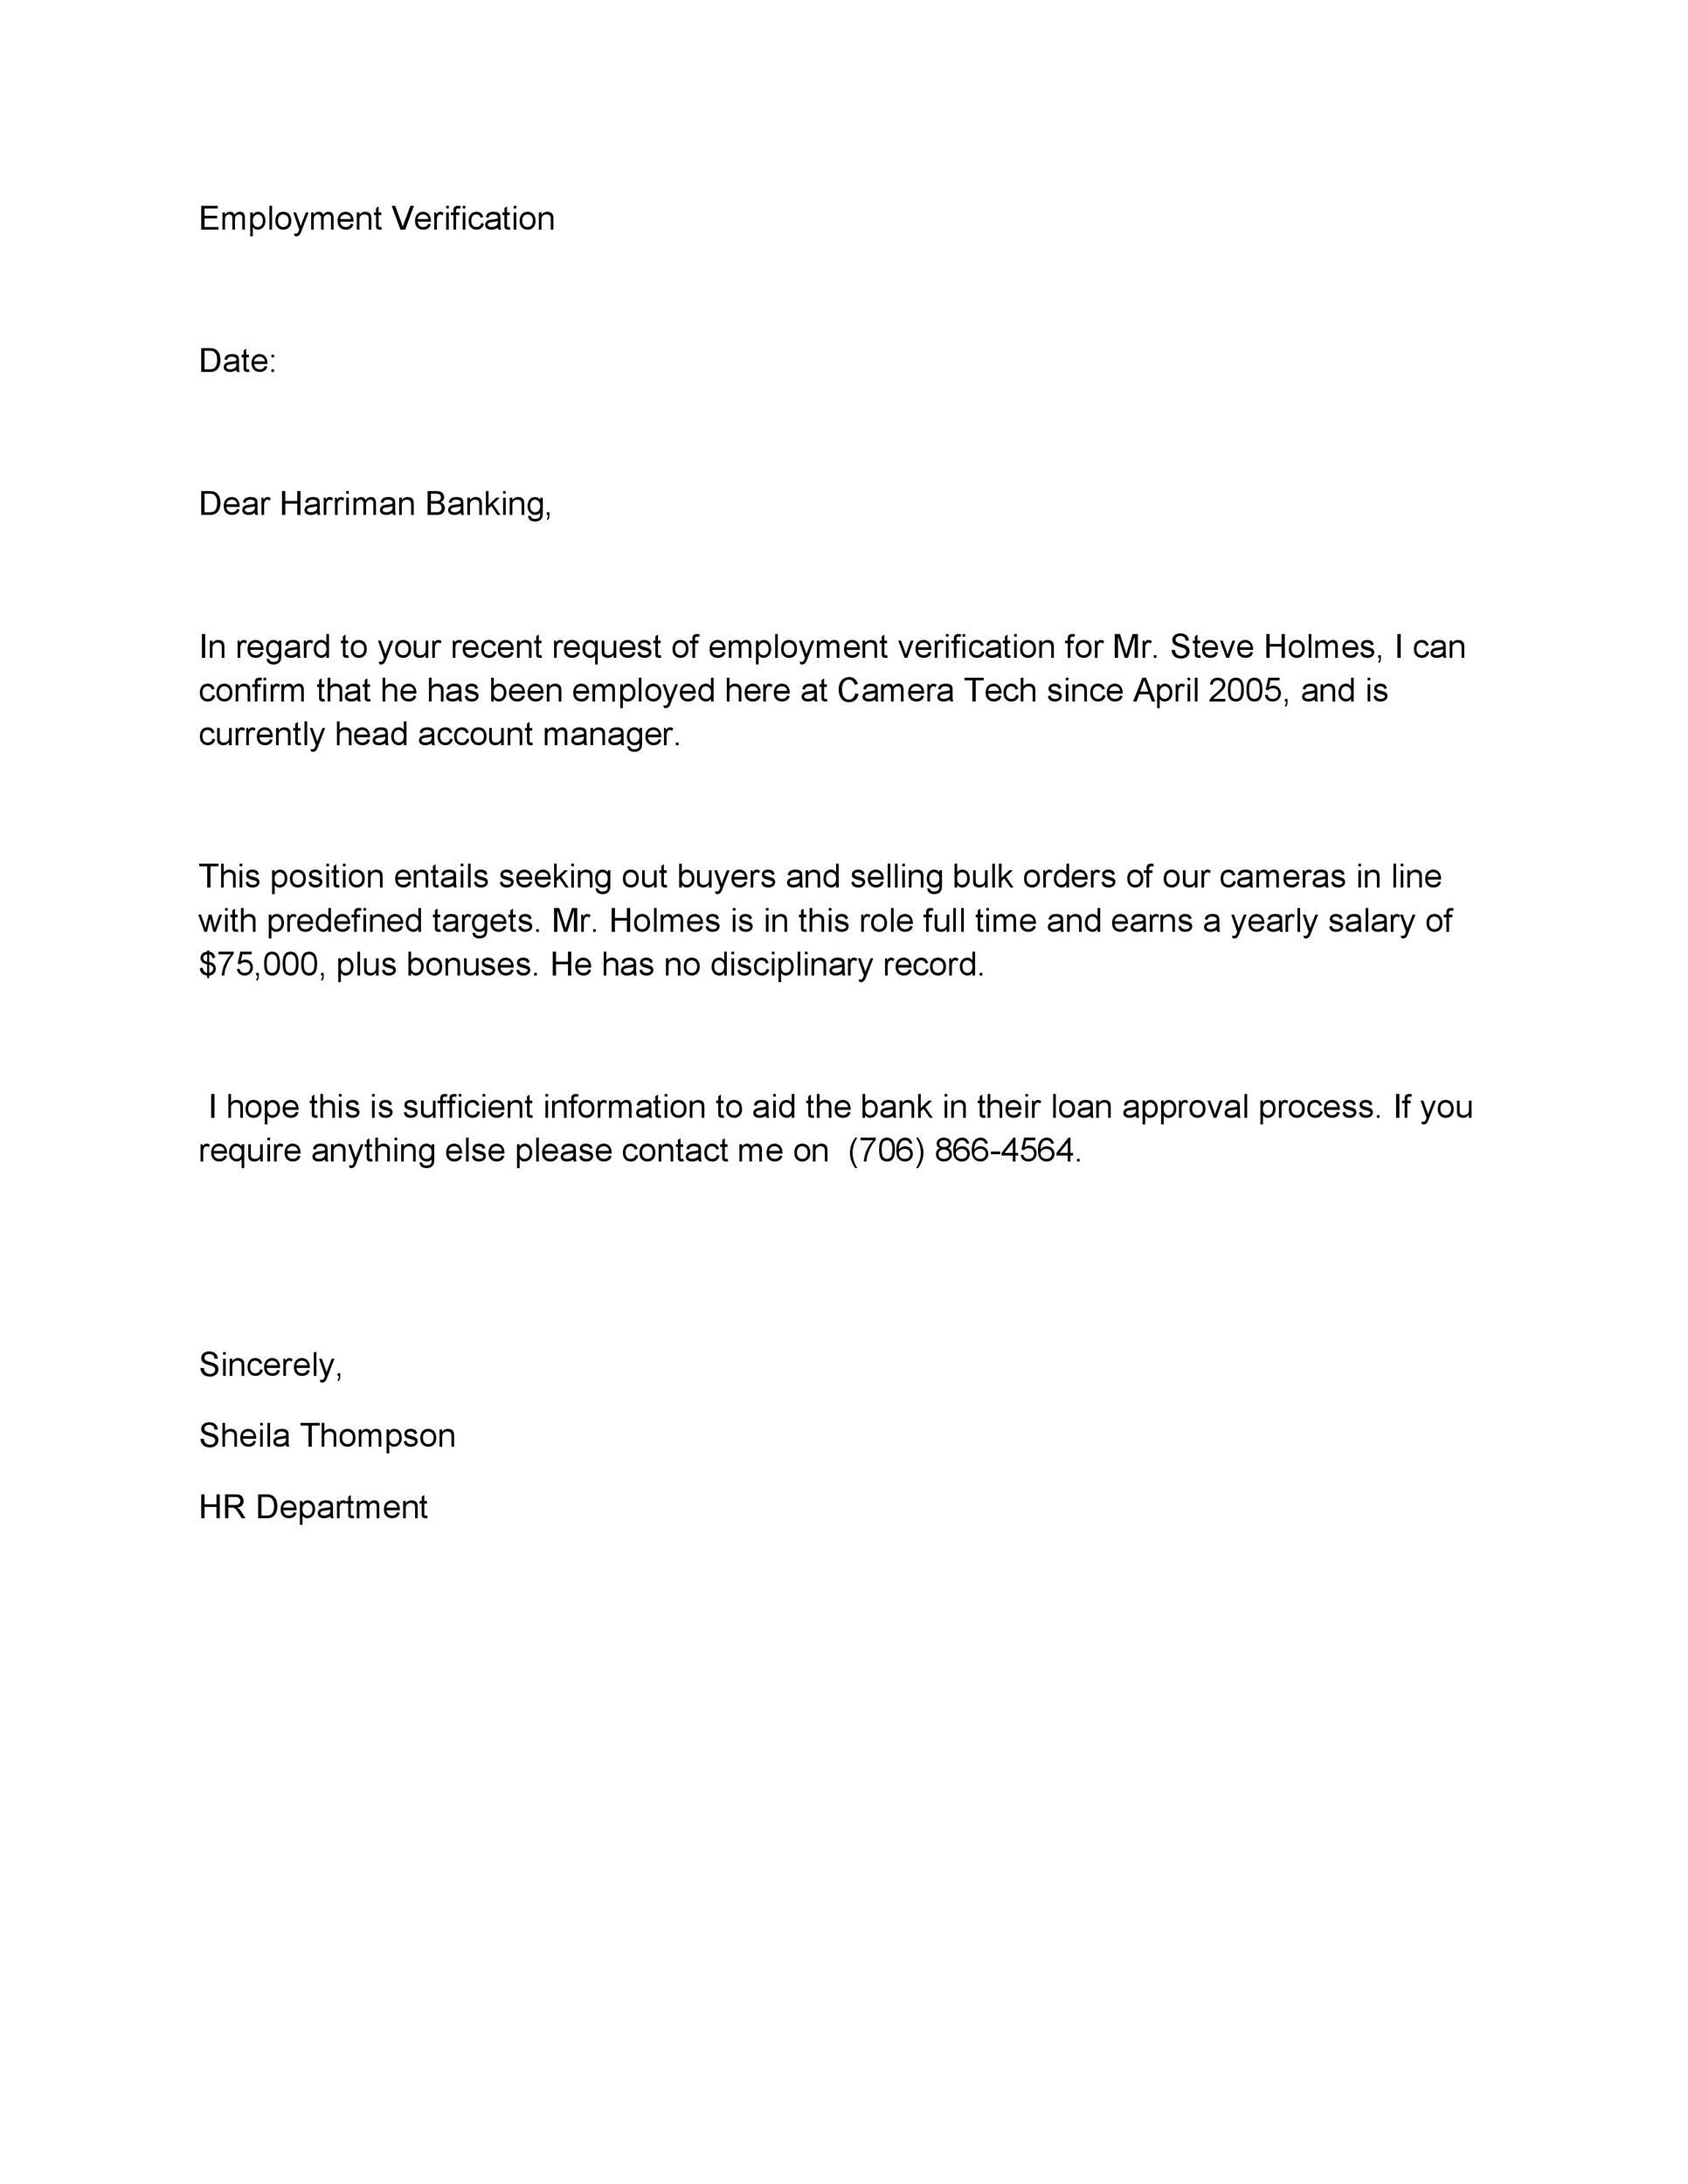 007 Awful Letter Of Employment Template Design  Confirmation Canada For MortgageFull